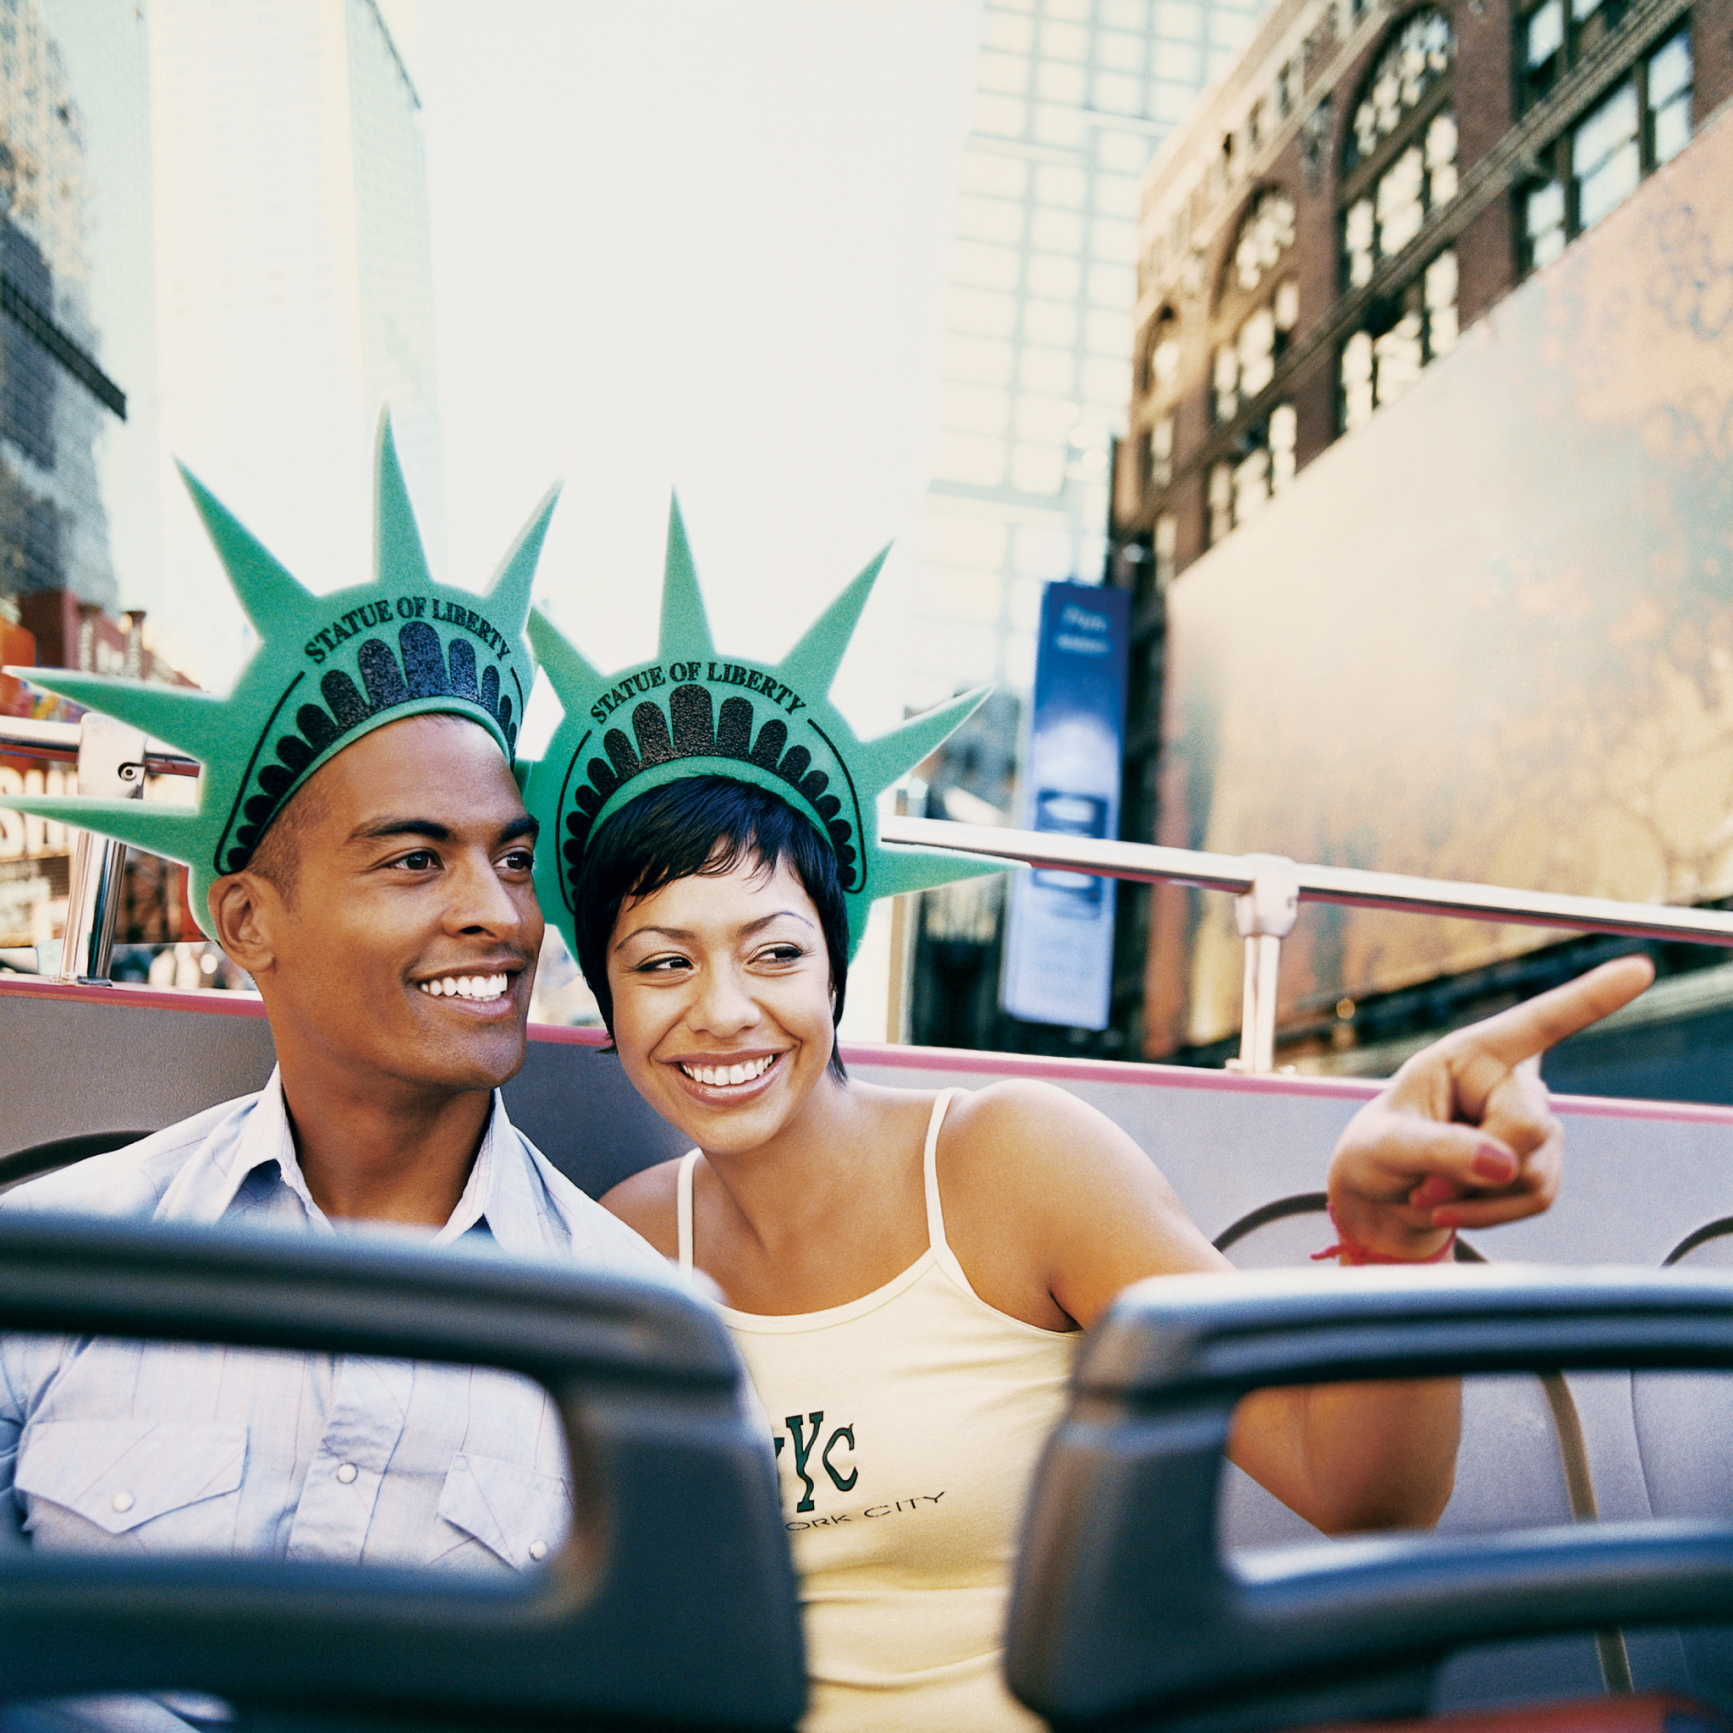 The Great Escape: New York City Travel Tips